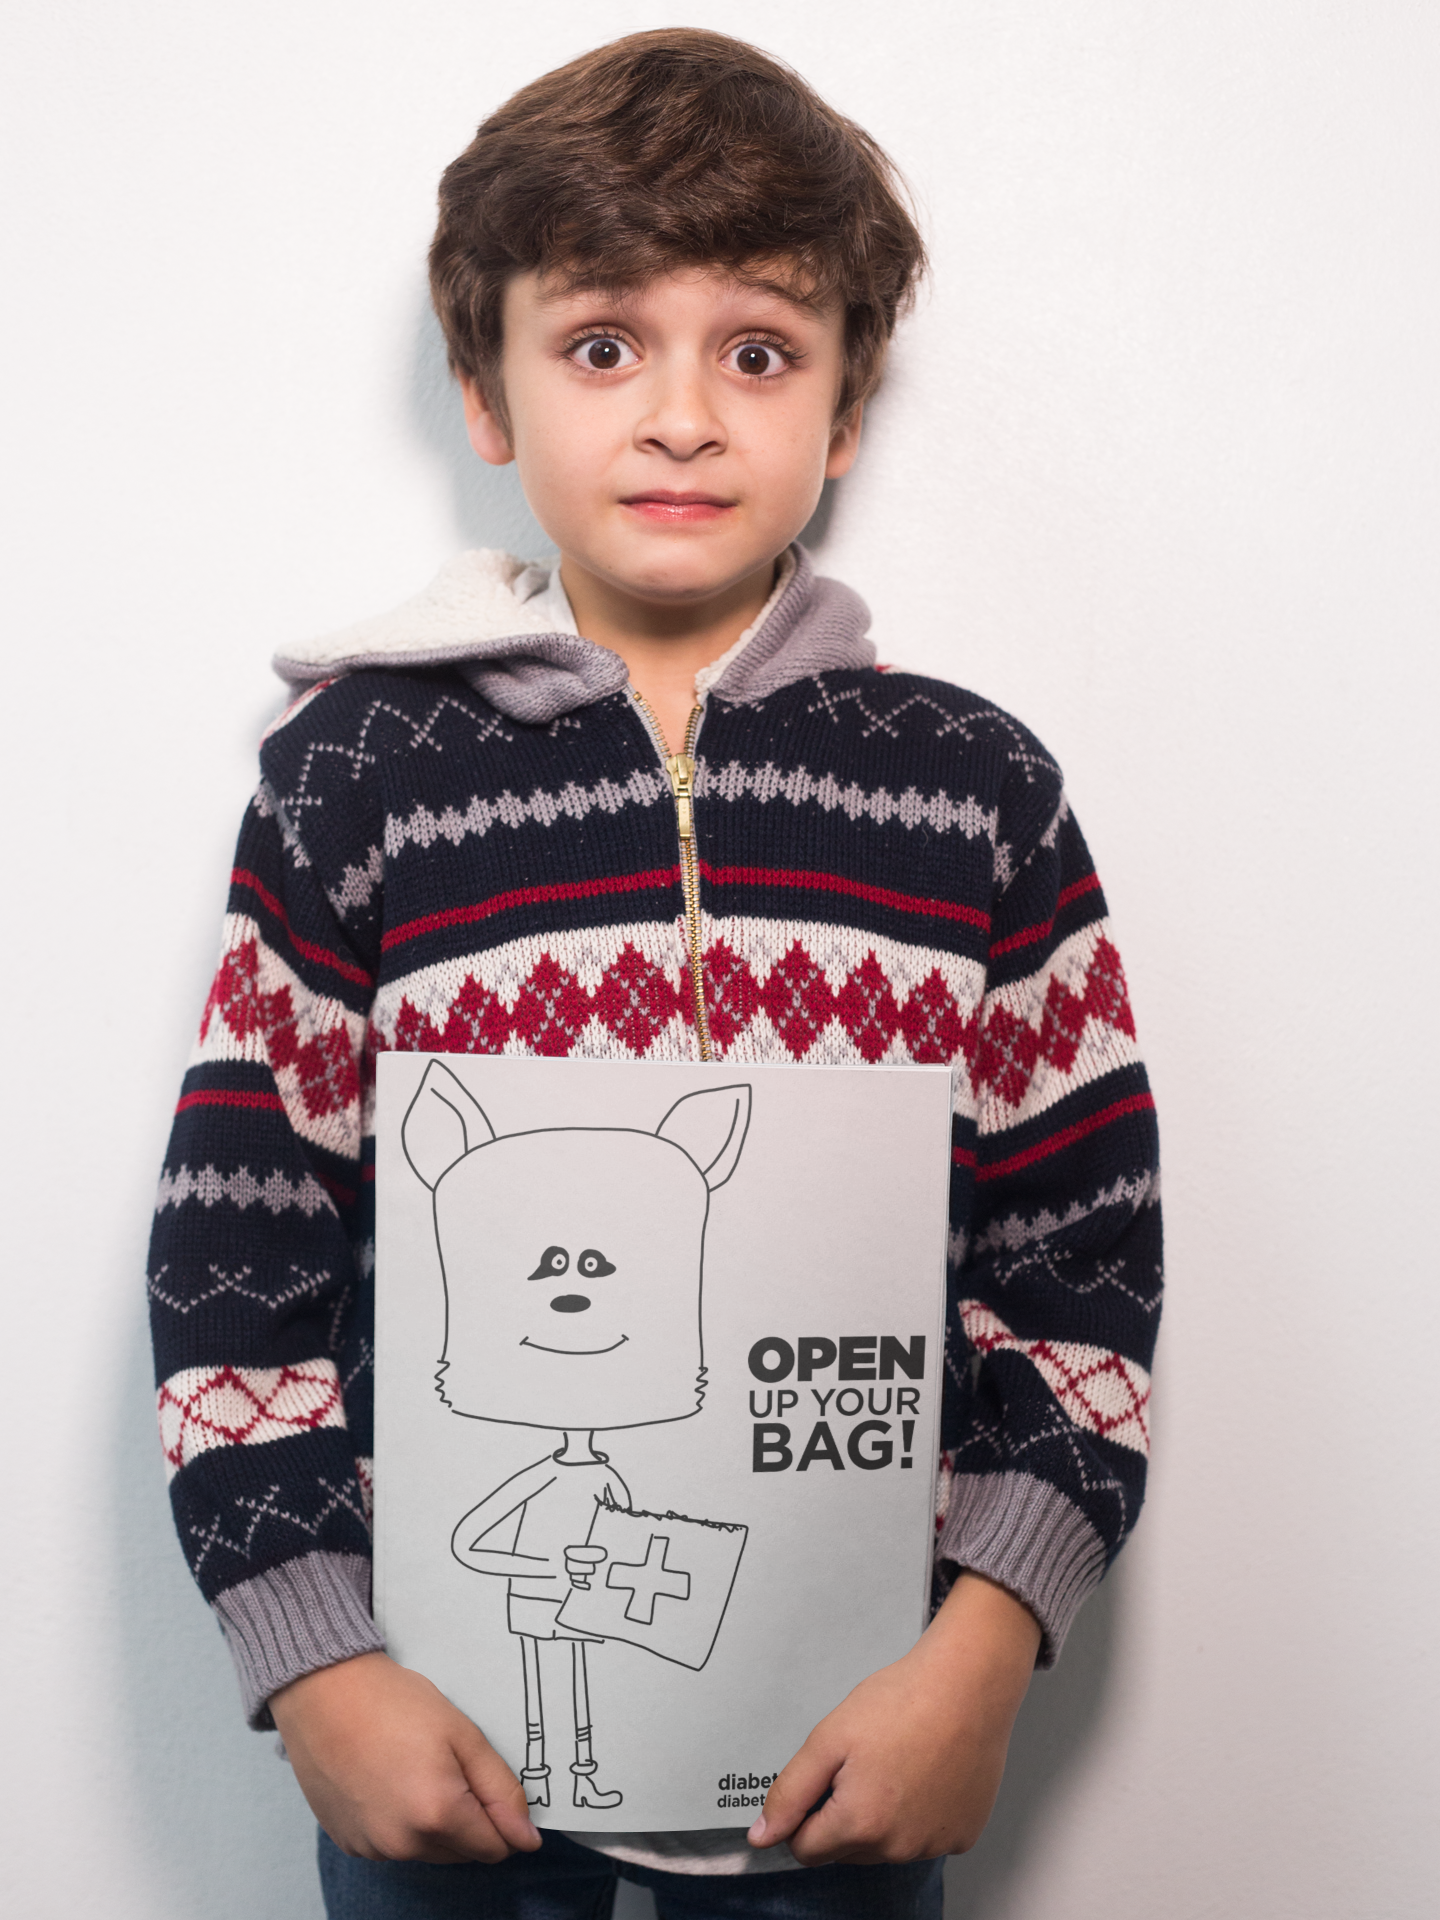 surprised-boy-holding-a-book-mockup-against-a-white-wall-a19219-2.png